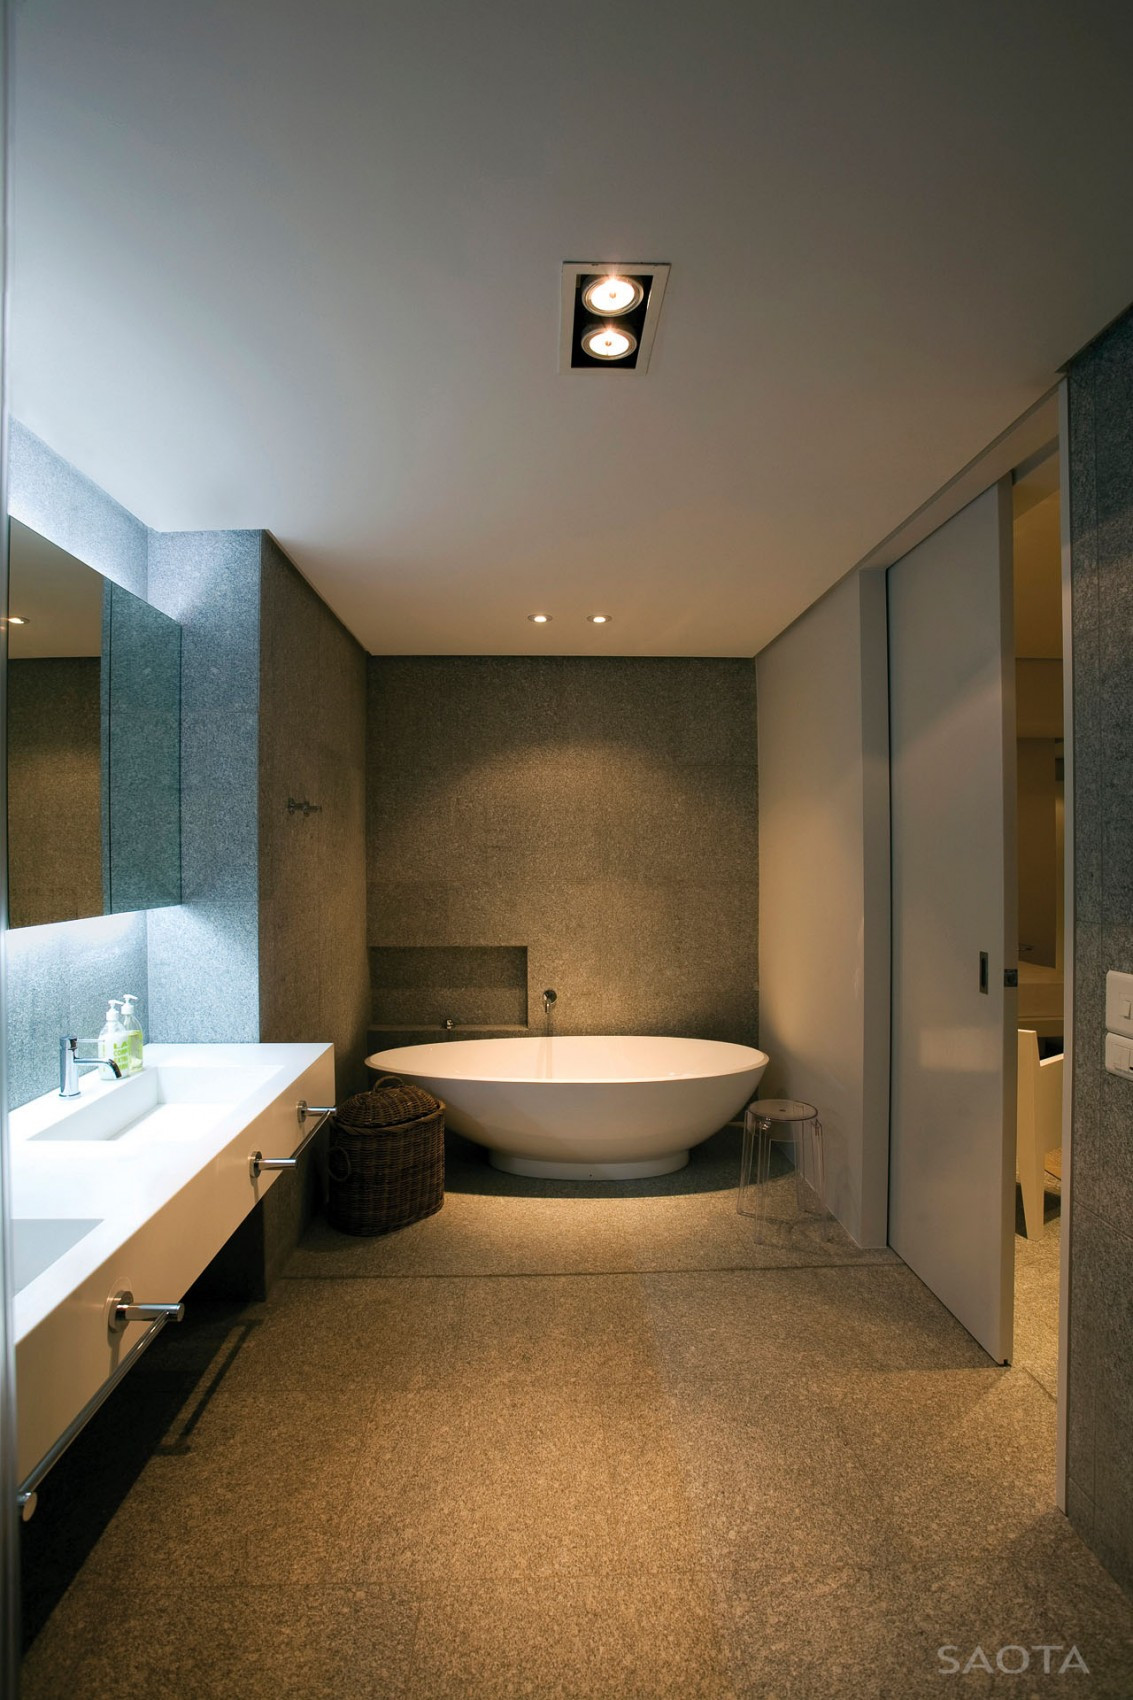 Breathtaking Bathrooms Design Terrace Design which Defines An Amazing Modern Home